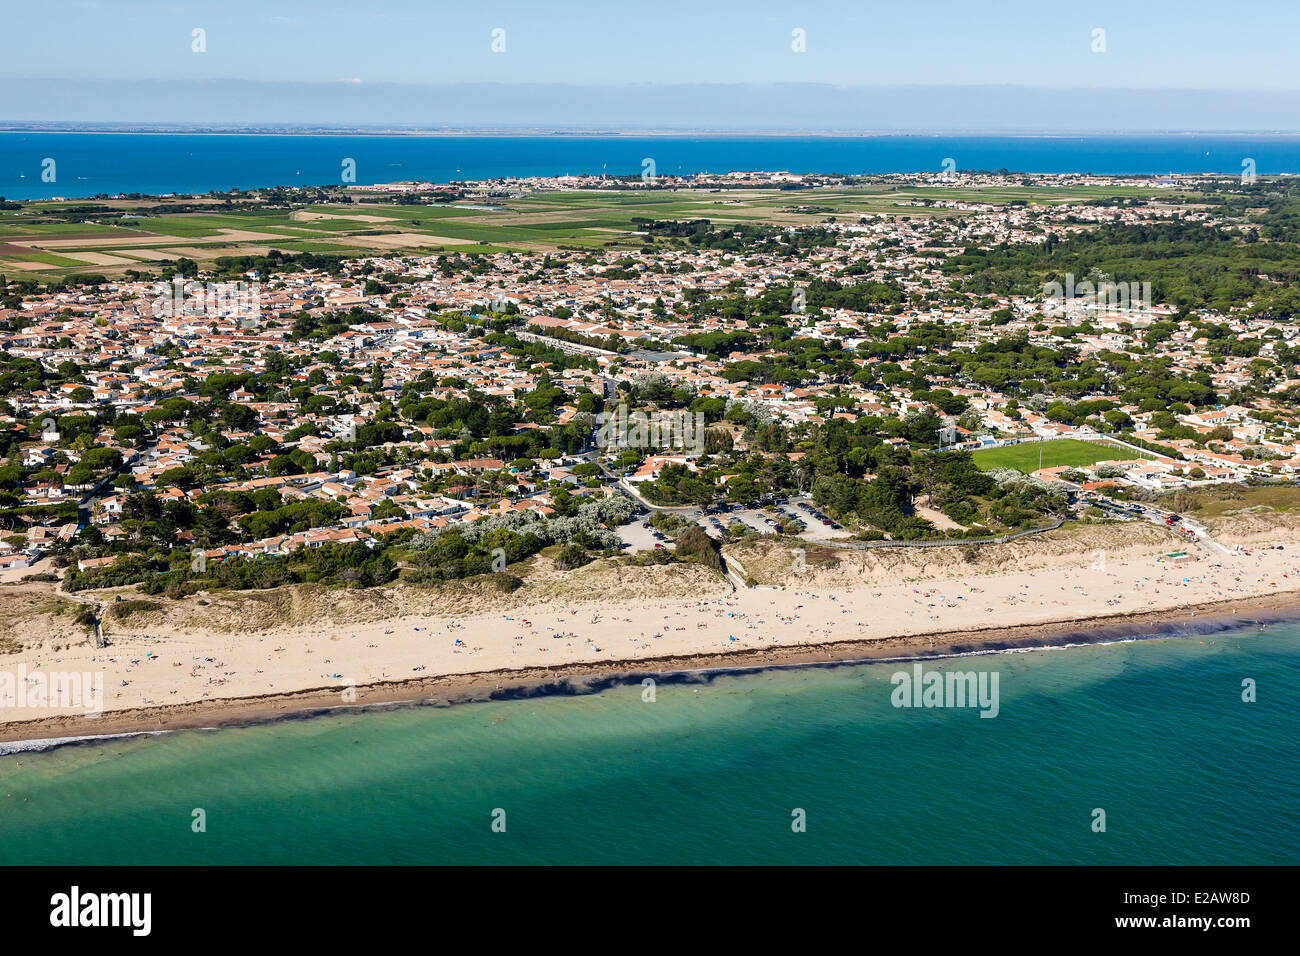 France, Charente Maritime, Ile de Re, Le Bois Plage, Gollandieres Stock Photo, Royalty Free  # Location Bois Plage En Ré